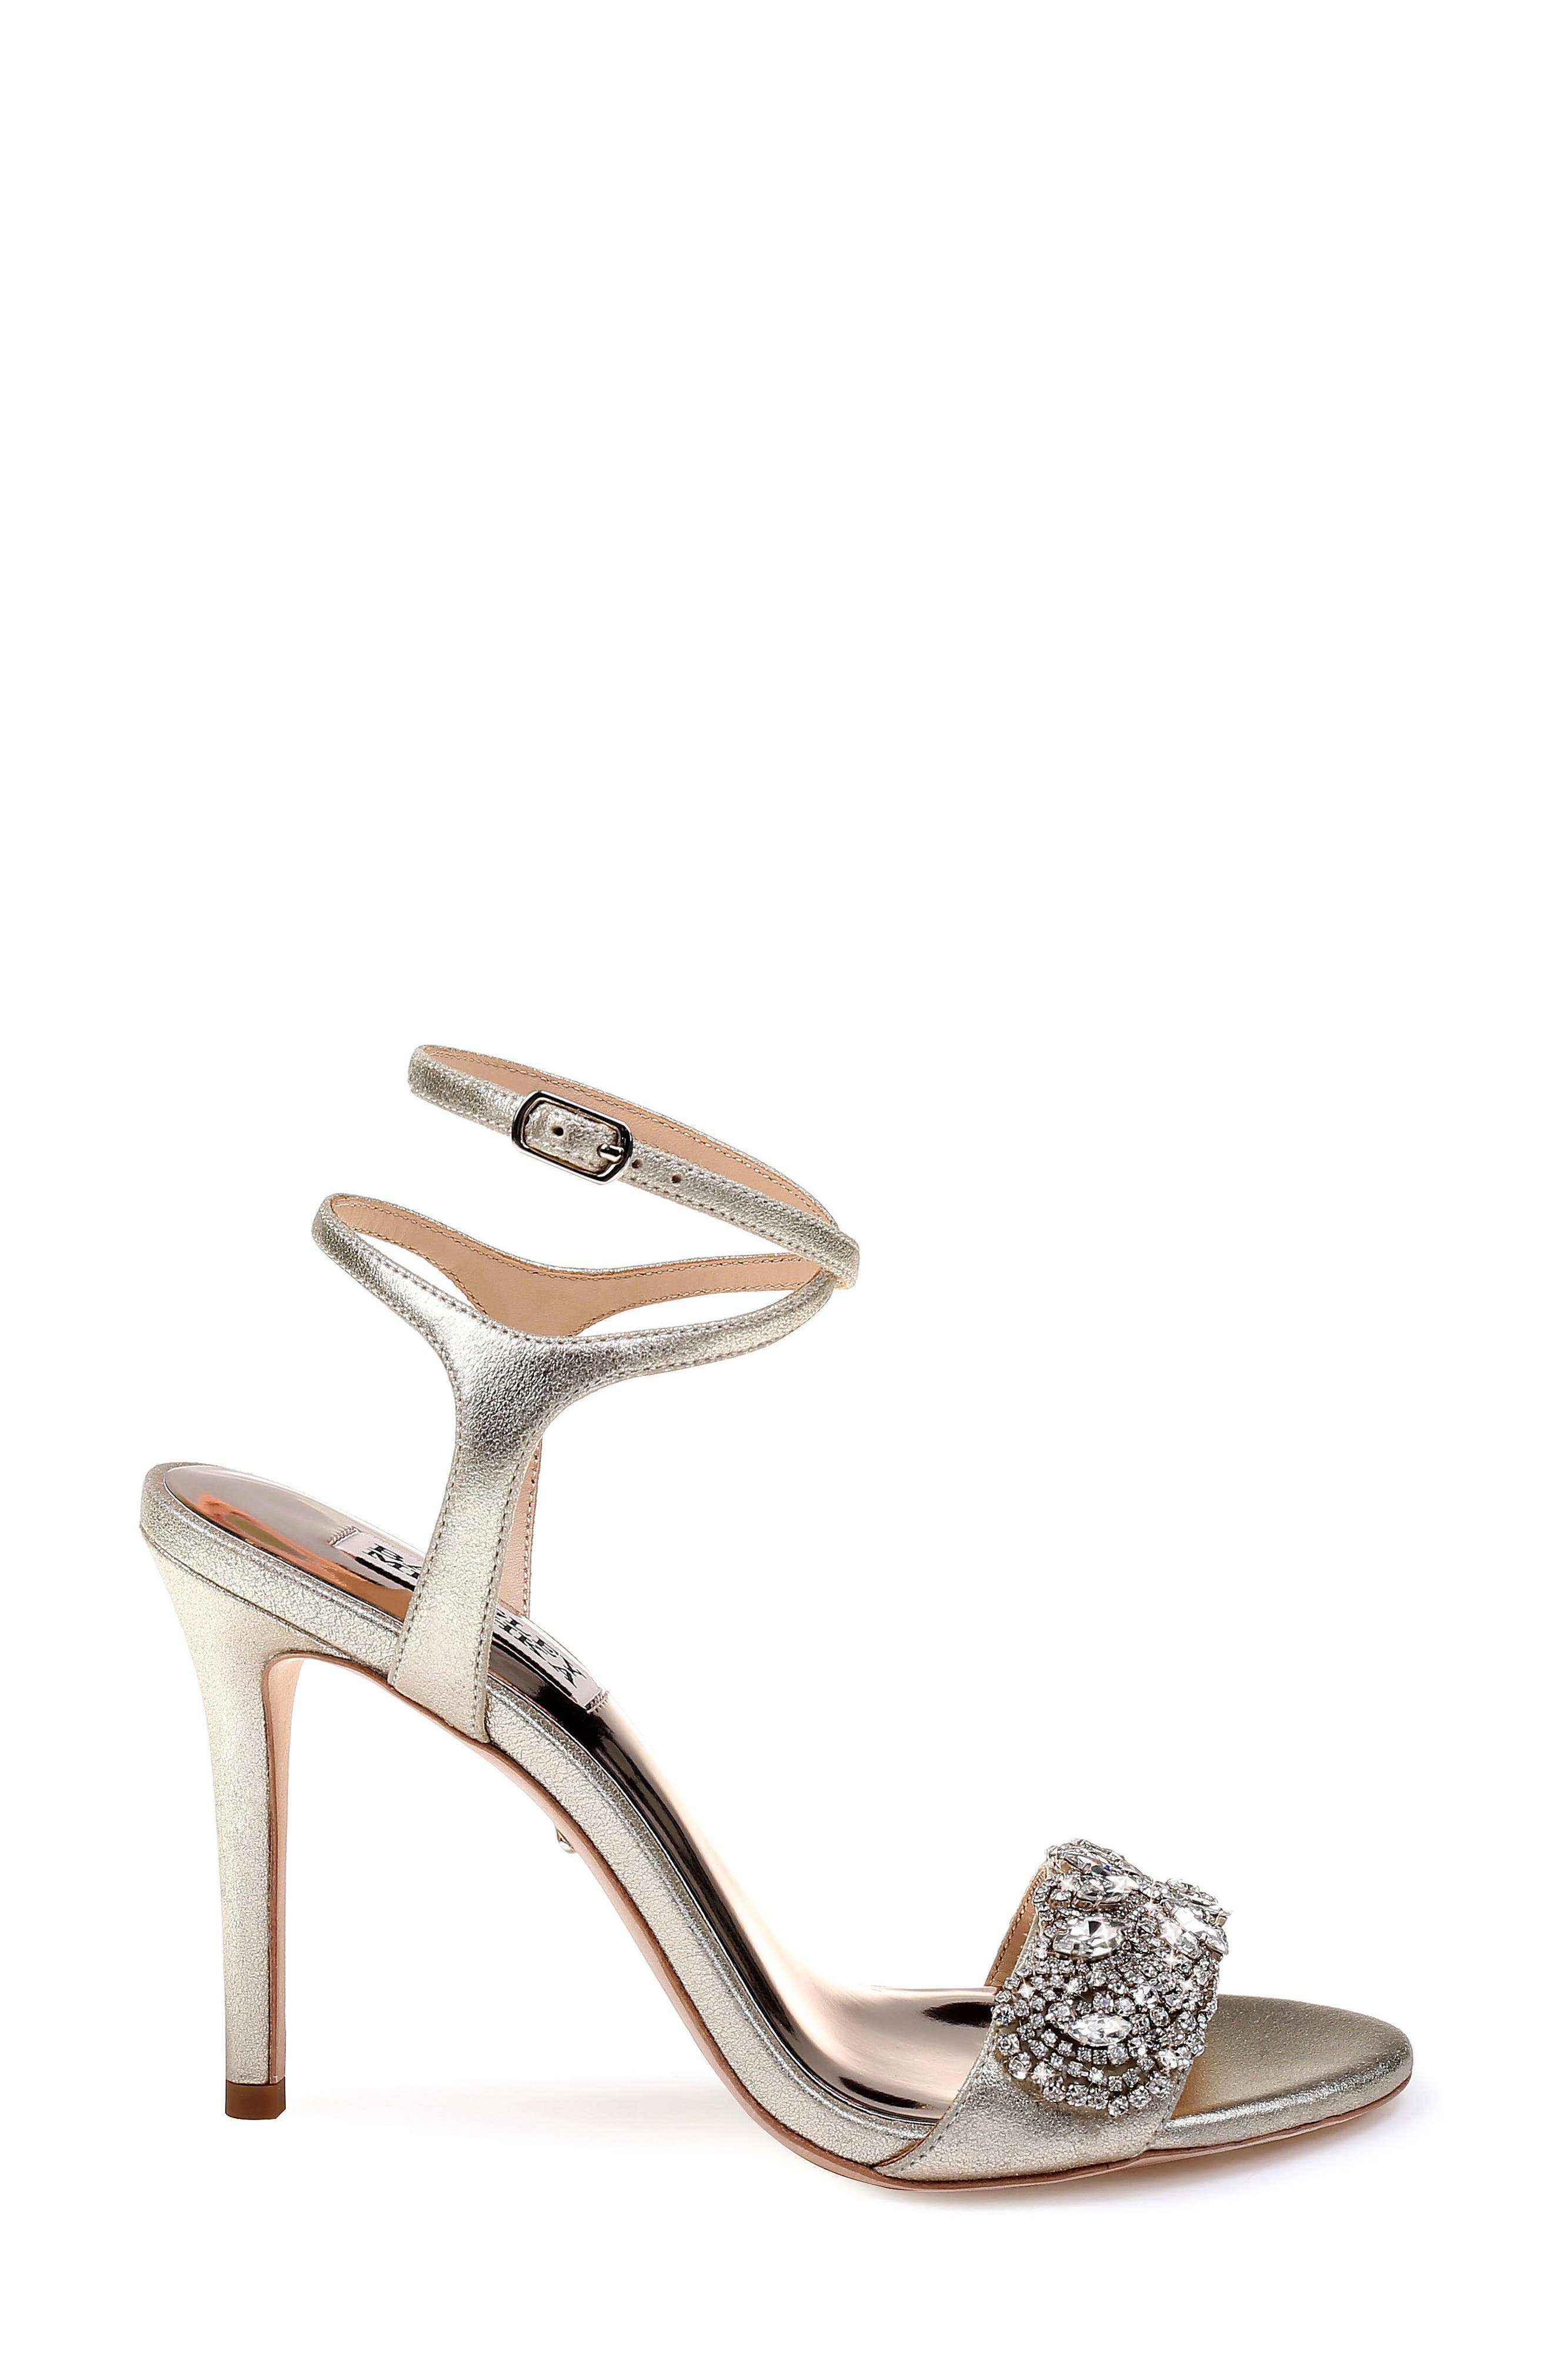 Hailey Embellished Ankle Strap Sandal,                             Alternate thumbnail 3, color,                             040